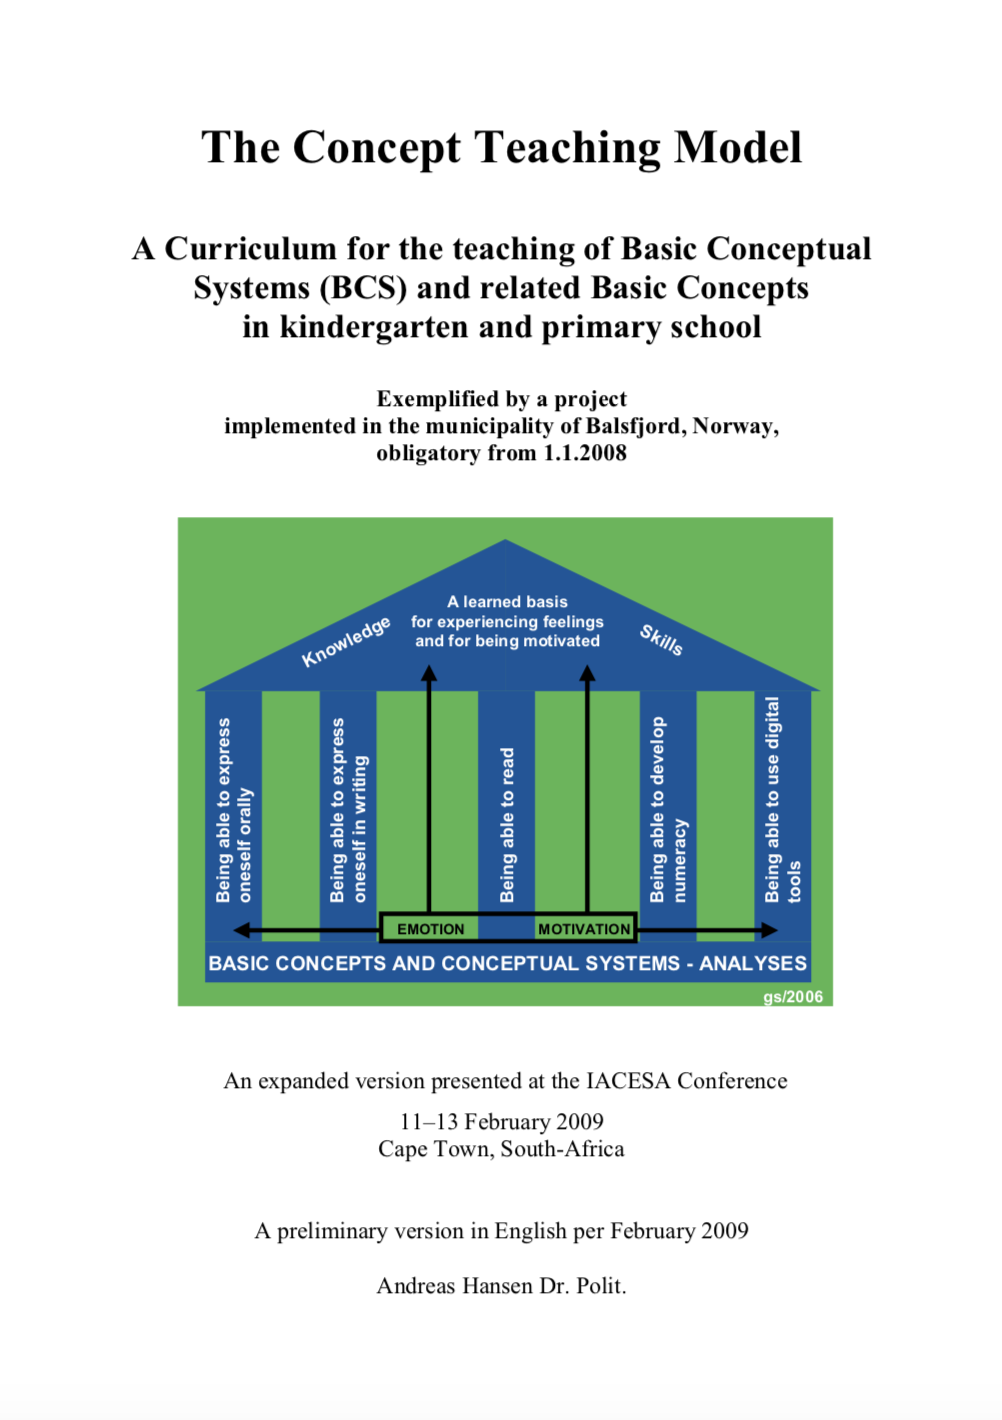 The Concept Teaching Model. - A Curriculum for the teaching of Basic Conceptual Systems (BCSs) in kindergarten and primary school(Hansen, 2009).* To download this book for your use, click on the book image to the left.